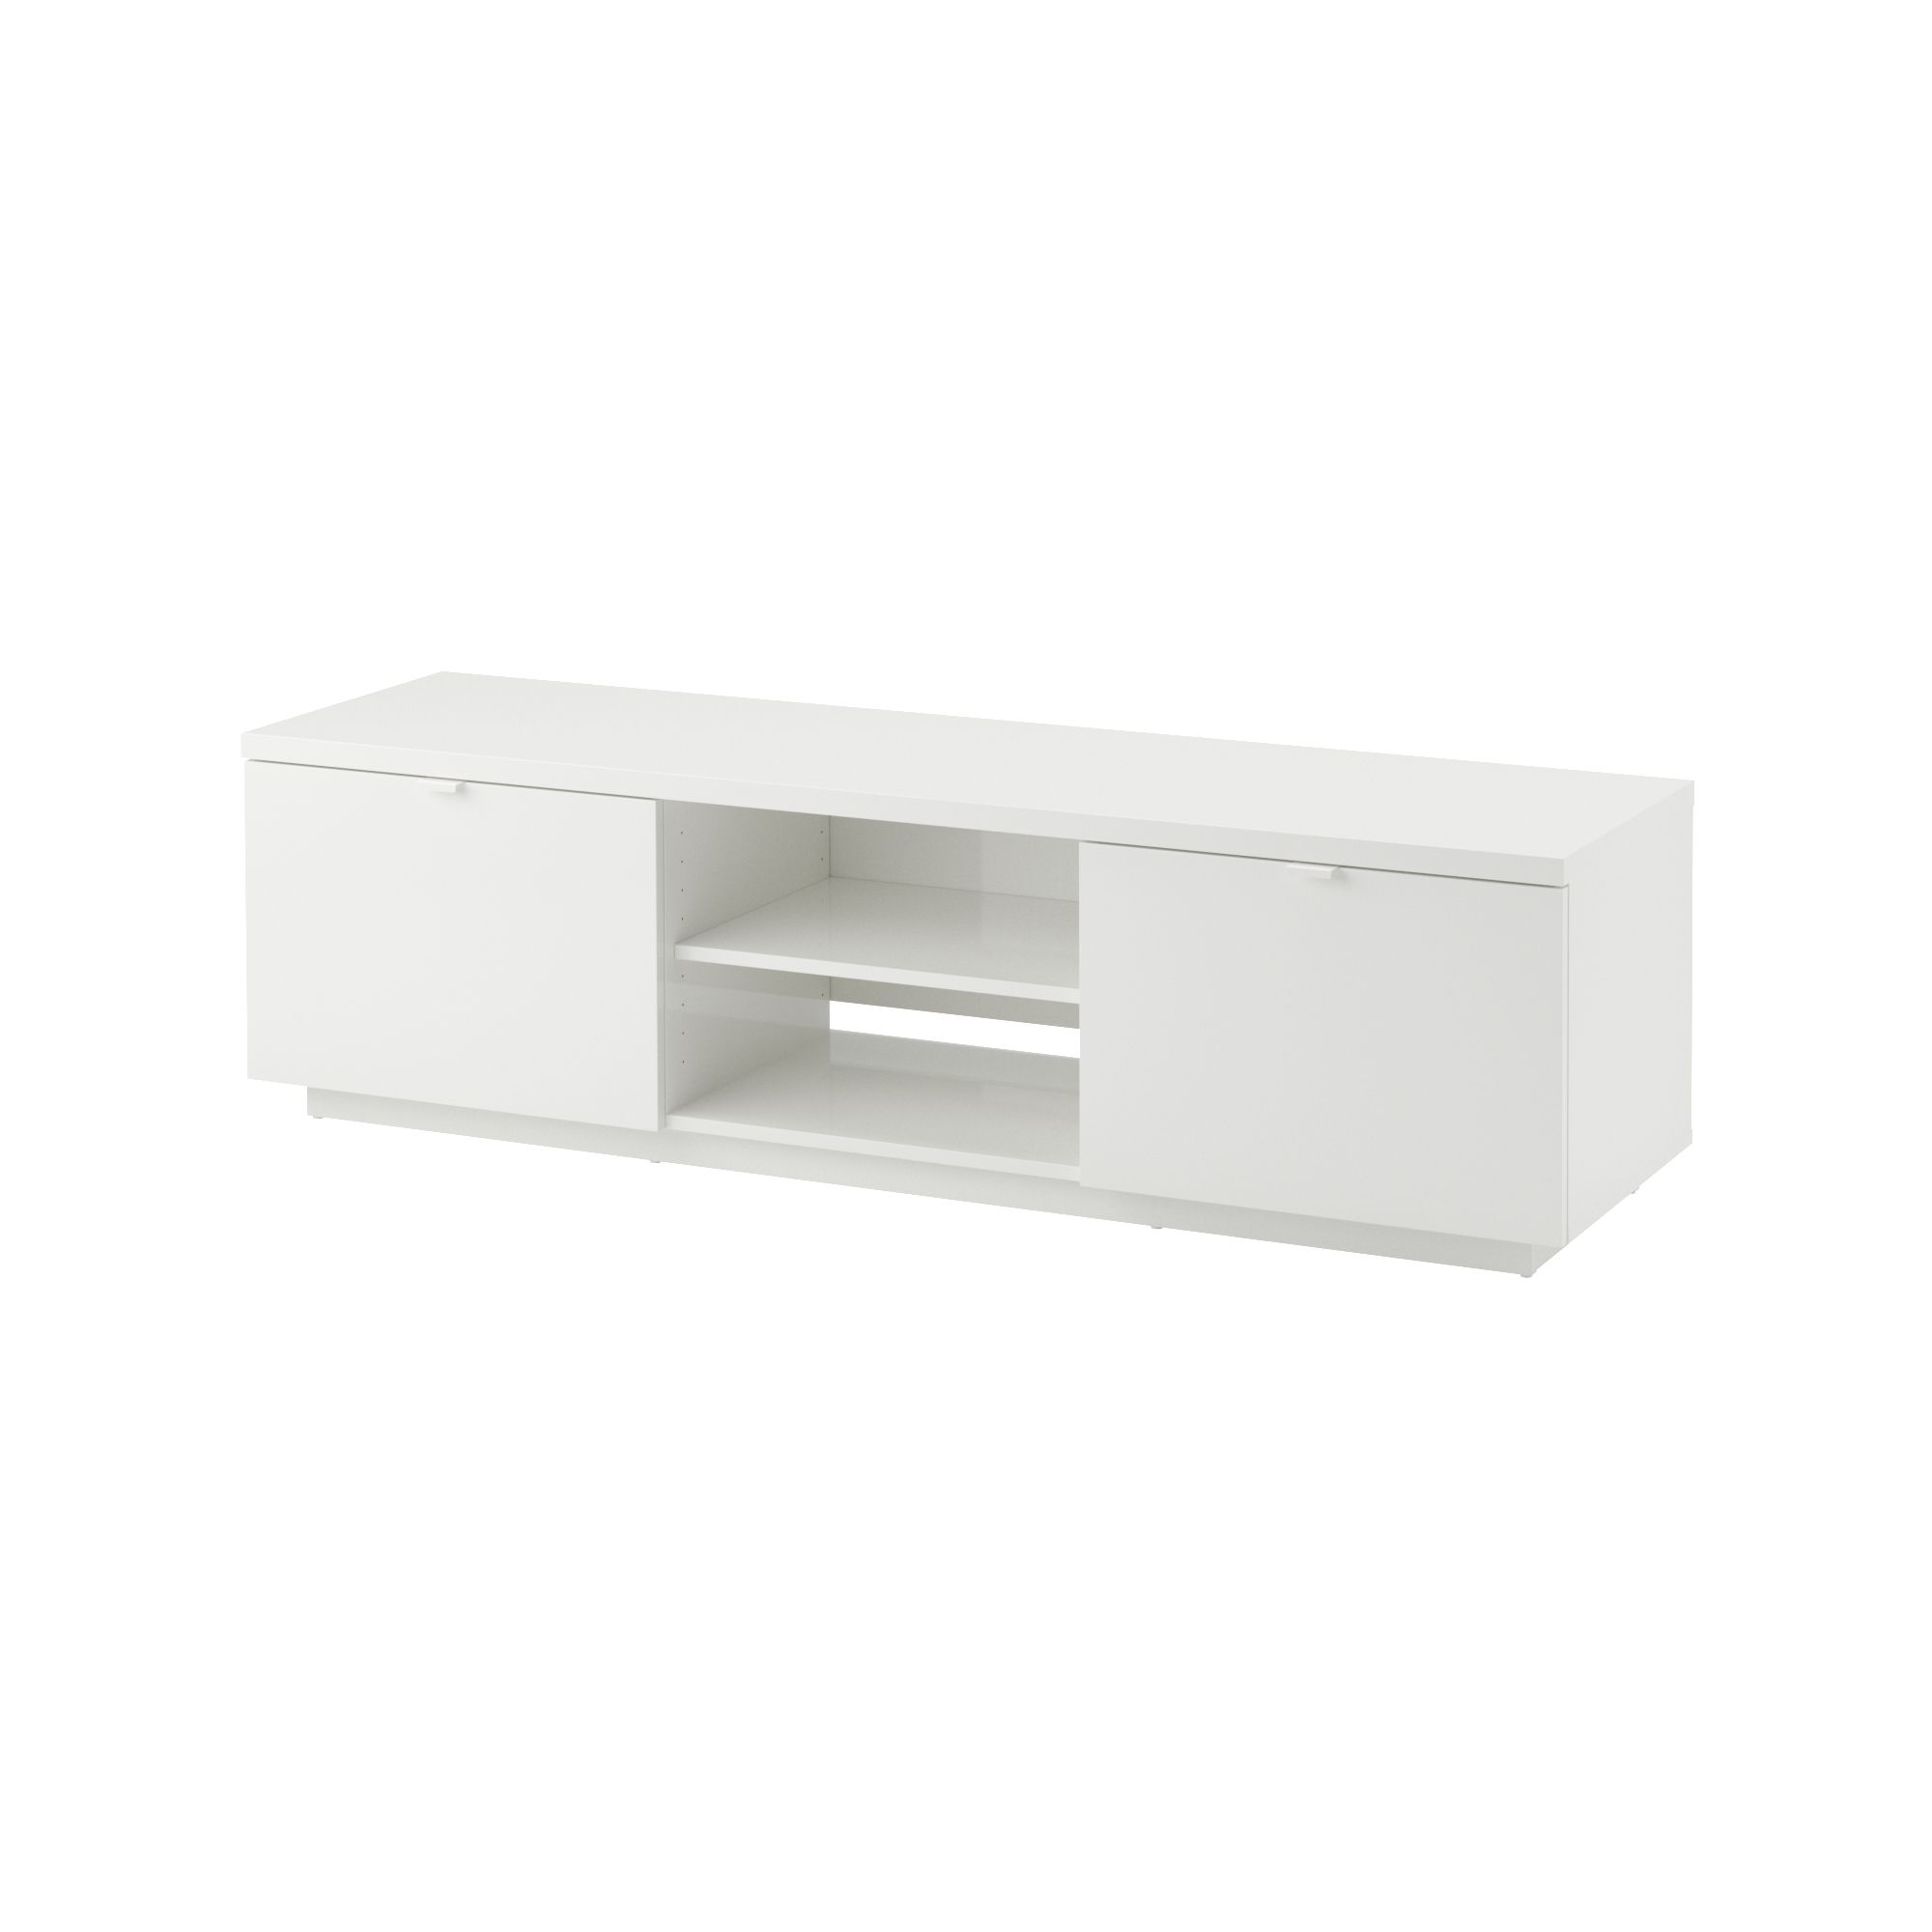 BYÅS TV unit, high gloss white high gloss white IKEA